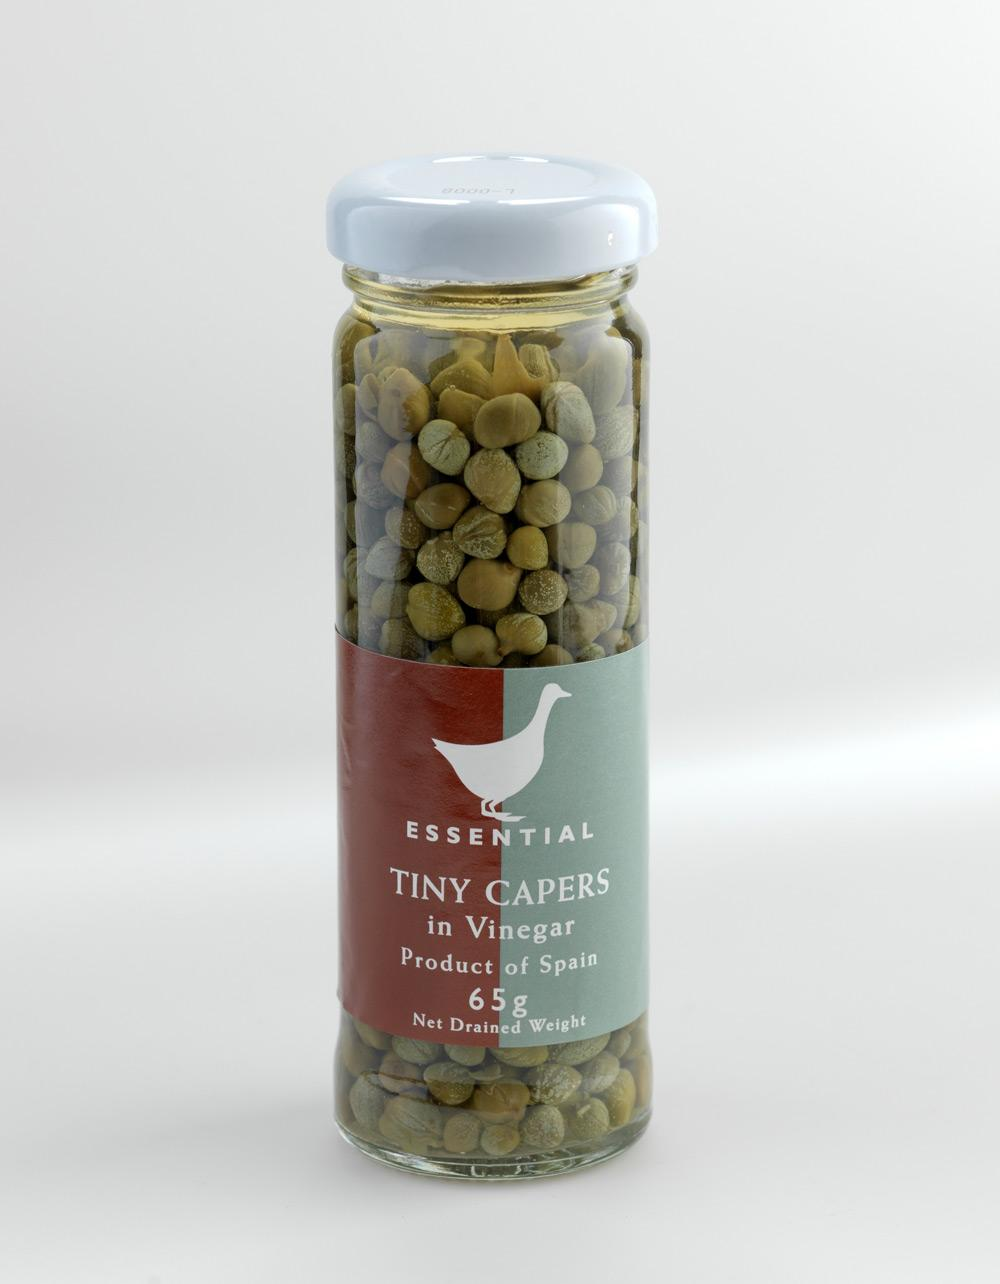 The Essential Ingredient Tiny Capers in Vinegar 65g